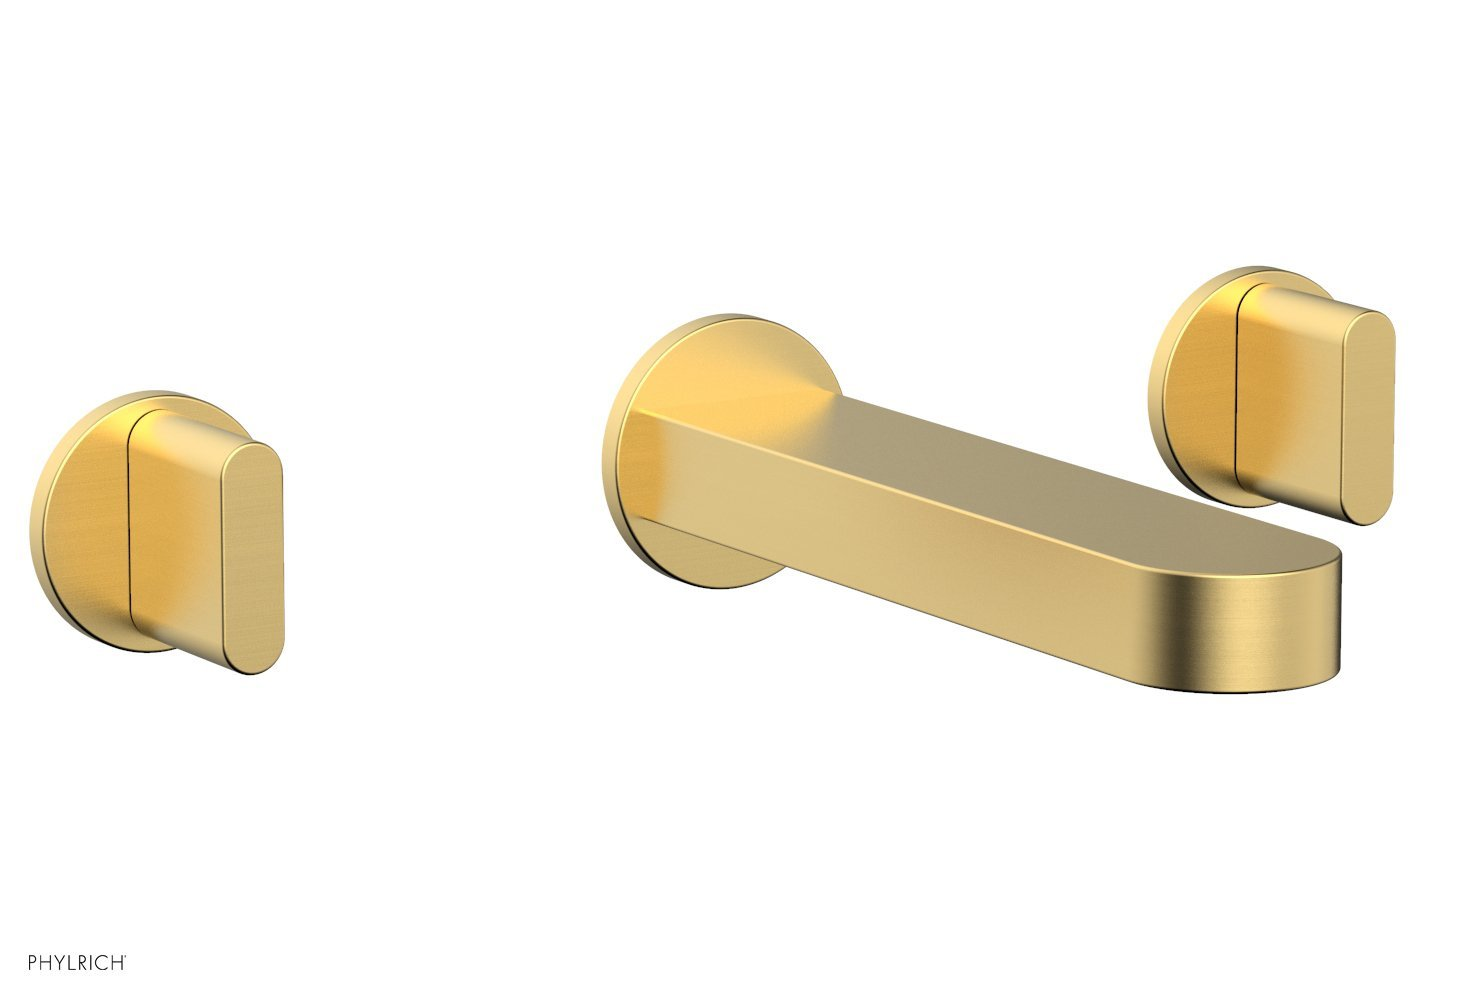 Phylrich 183-11-24B ROND Wall Lavatory Set - Blade Handles - Burnished Gold